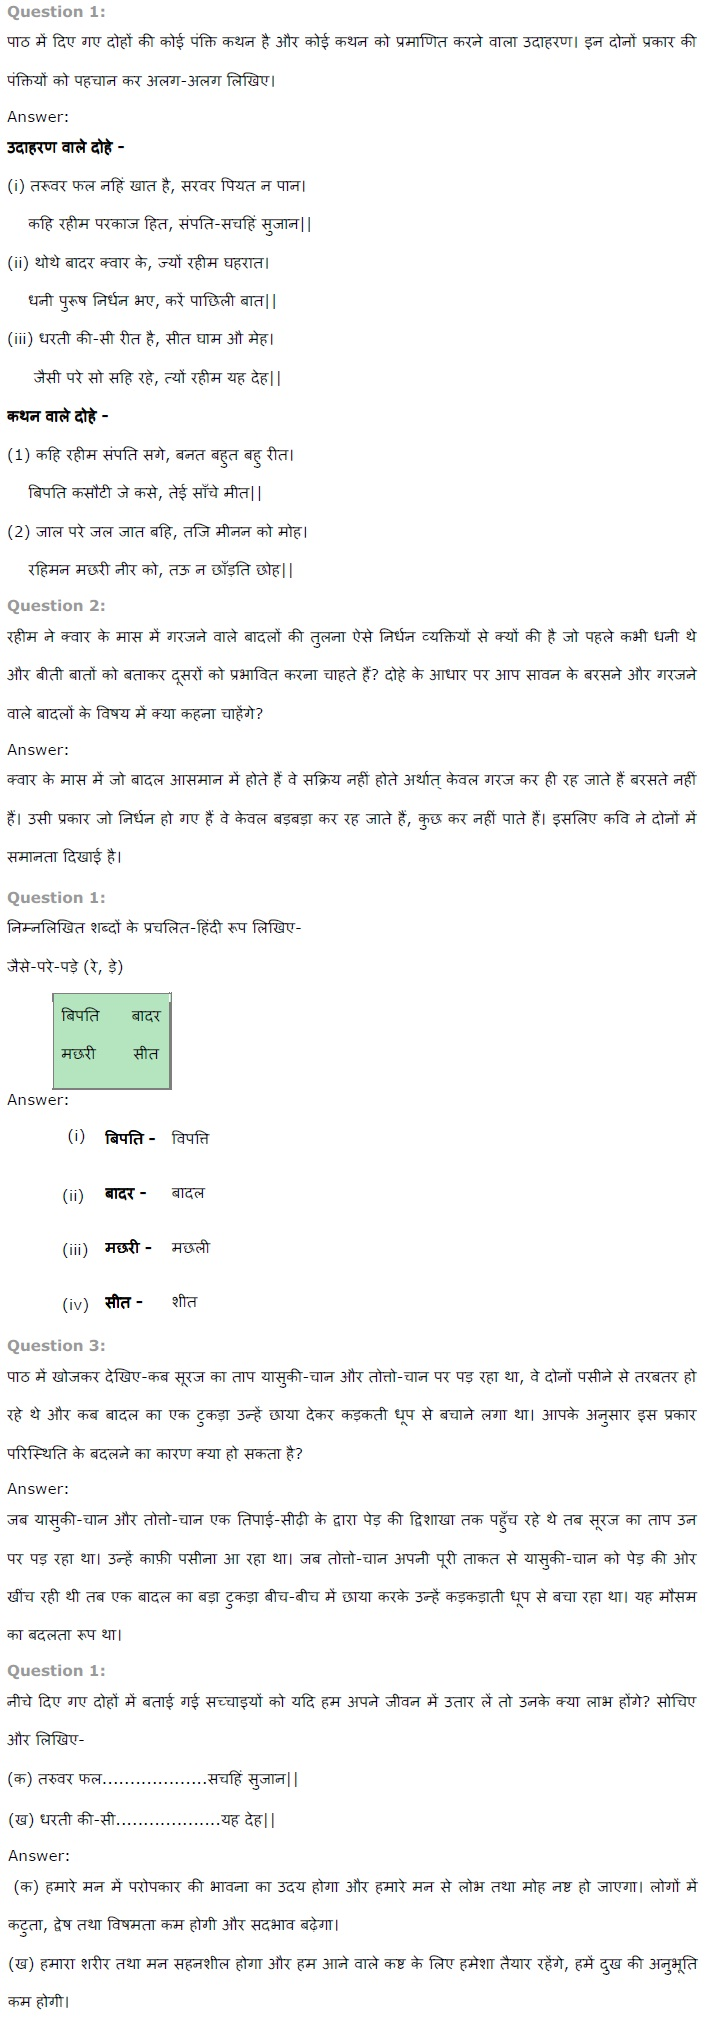 NCERT Solutions for Class 7 Hindi Chapter 11 रहीम की दोहे PDF Download